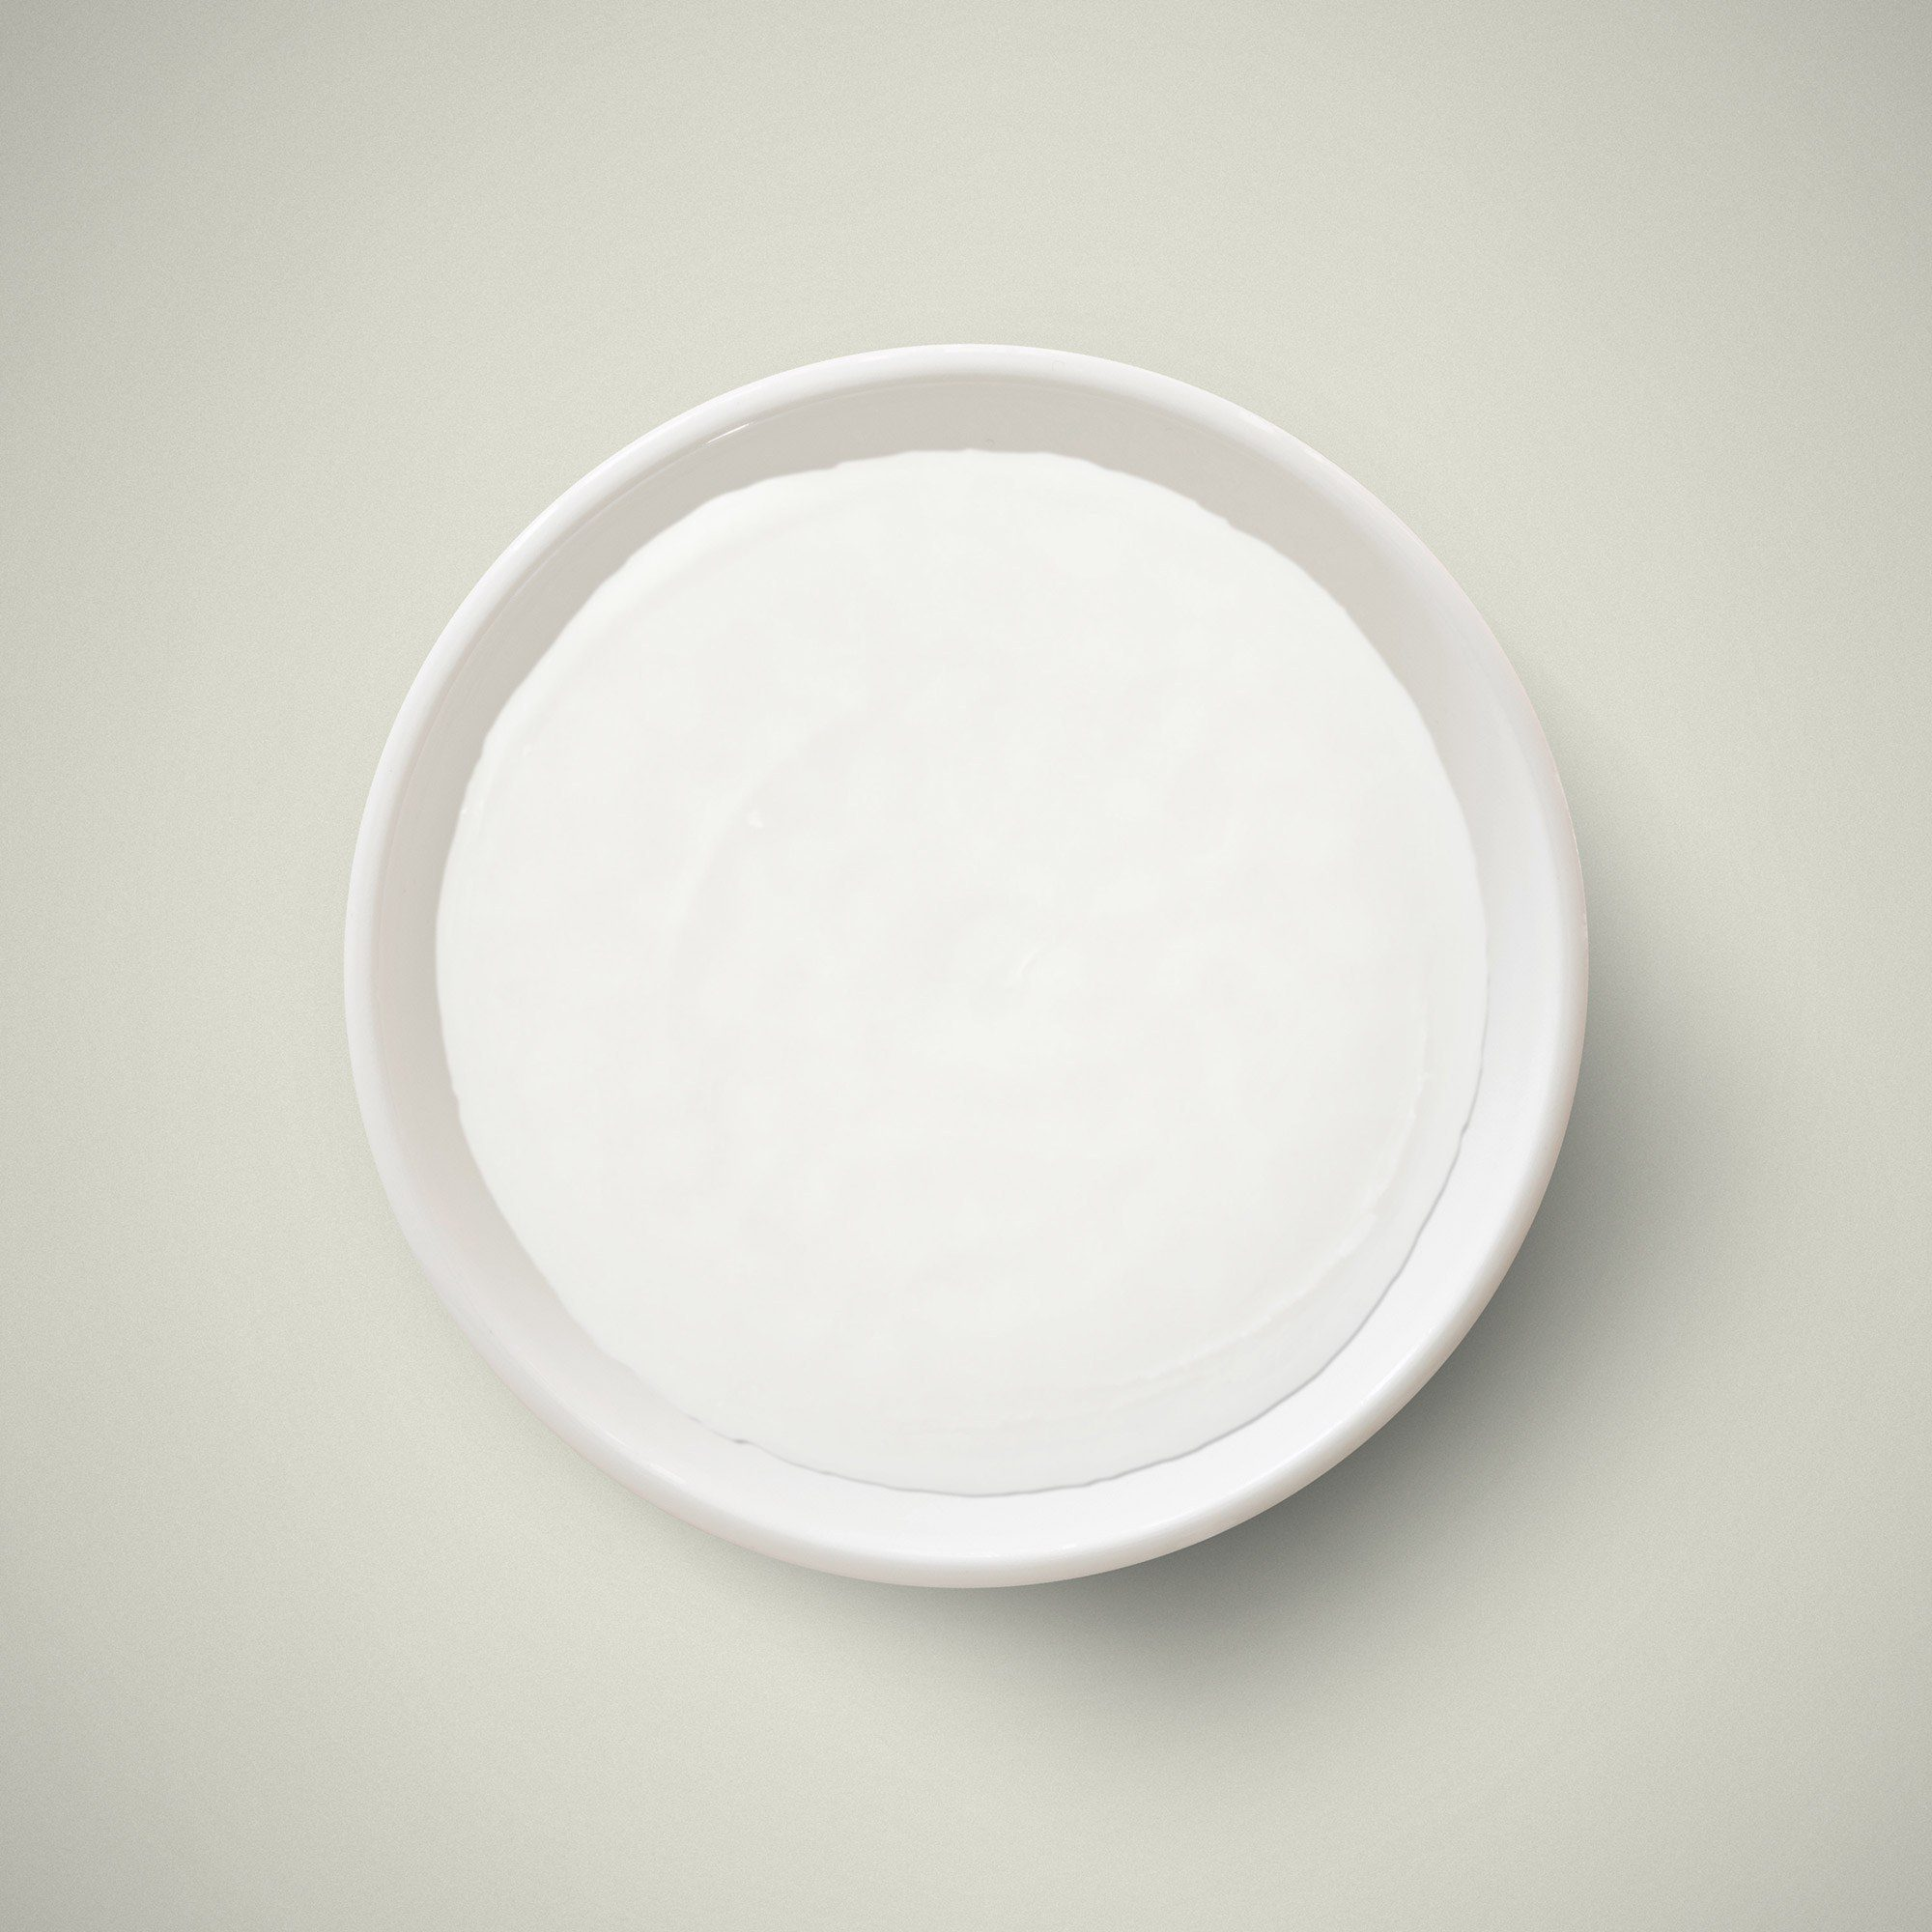 A bowl of white melt and pour soap base, which is available from H Foster.